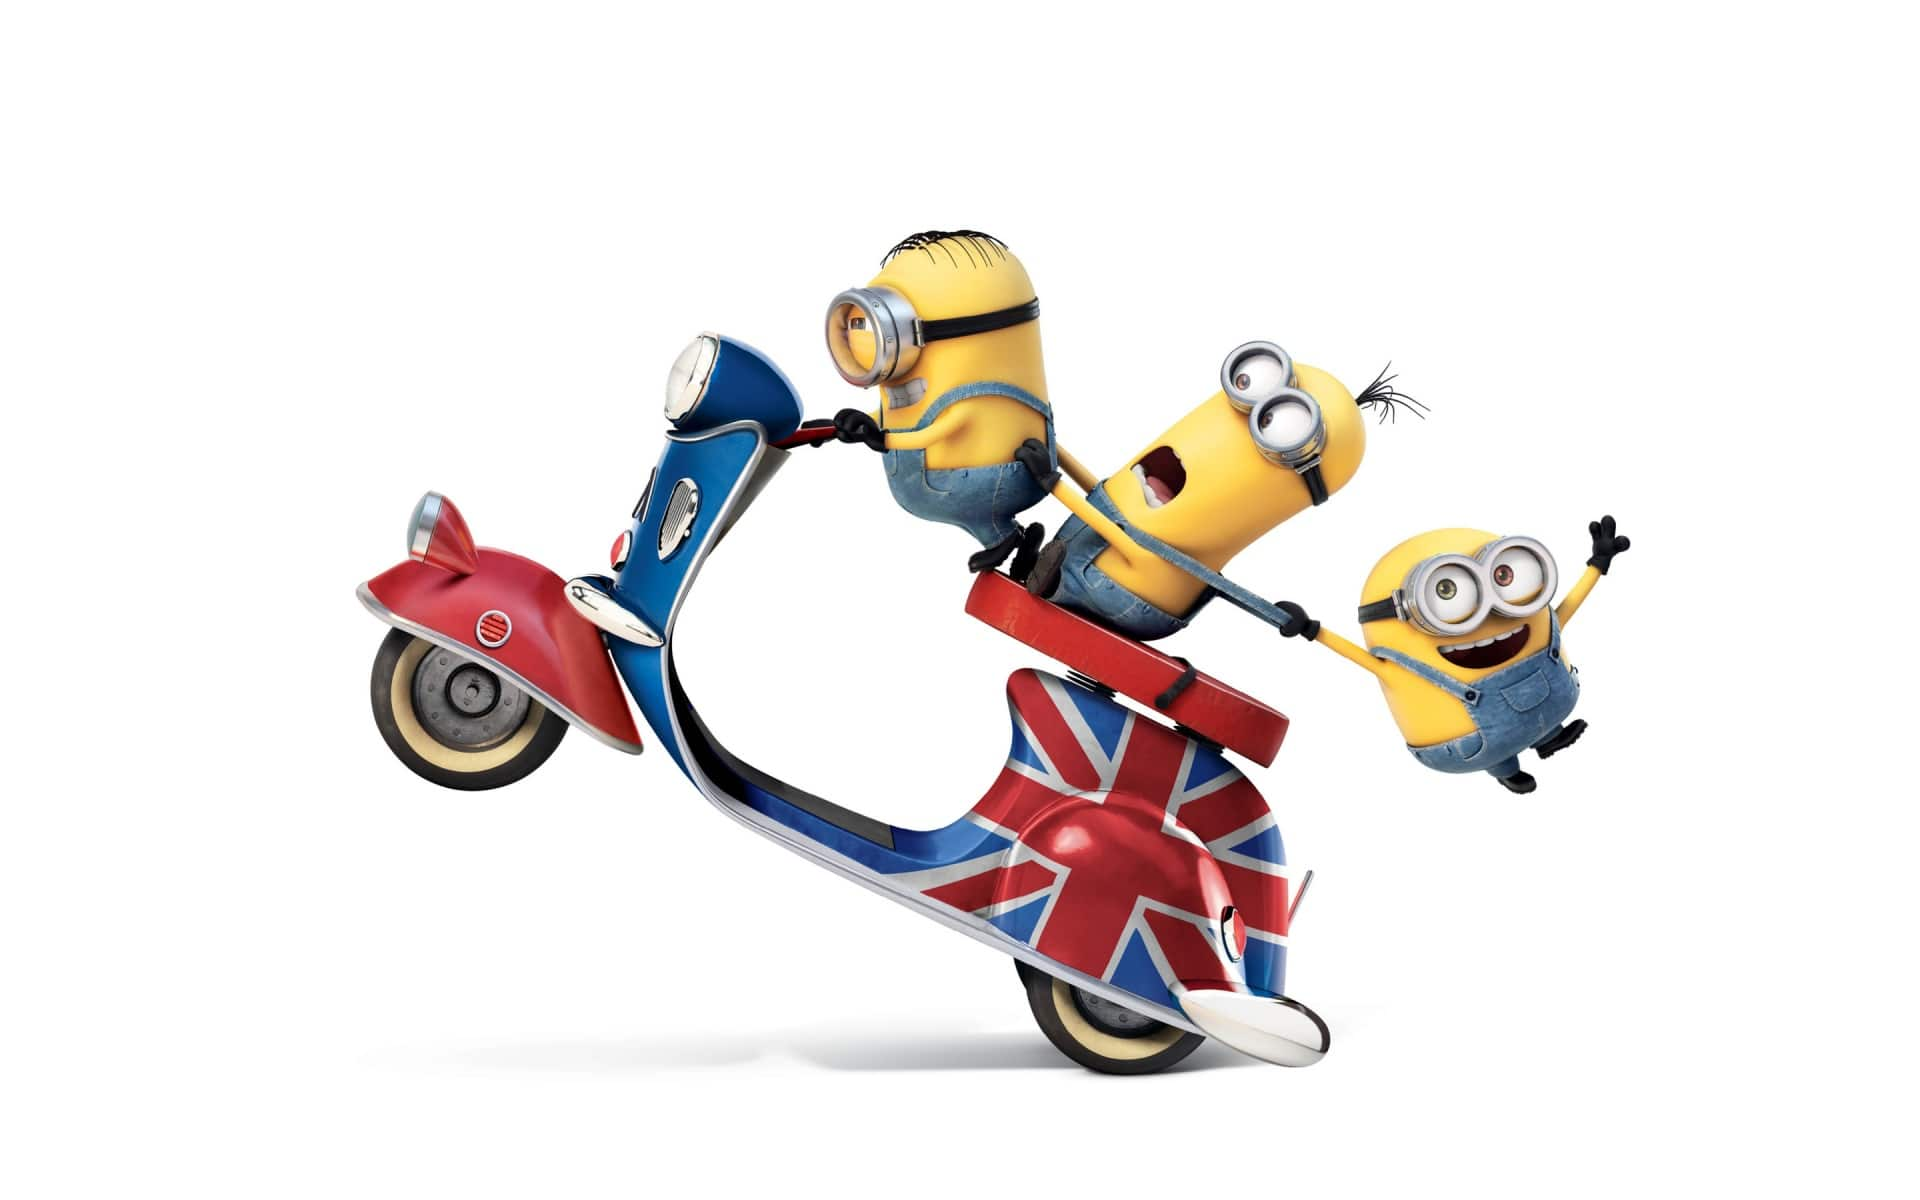 Minions Hd Wallpapers 7wallpapers Net